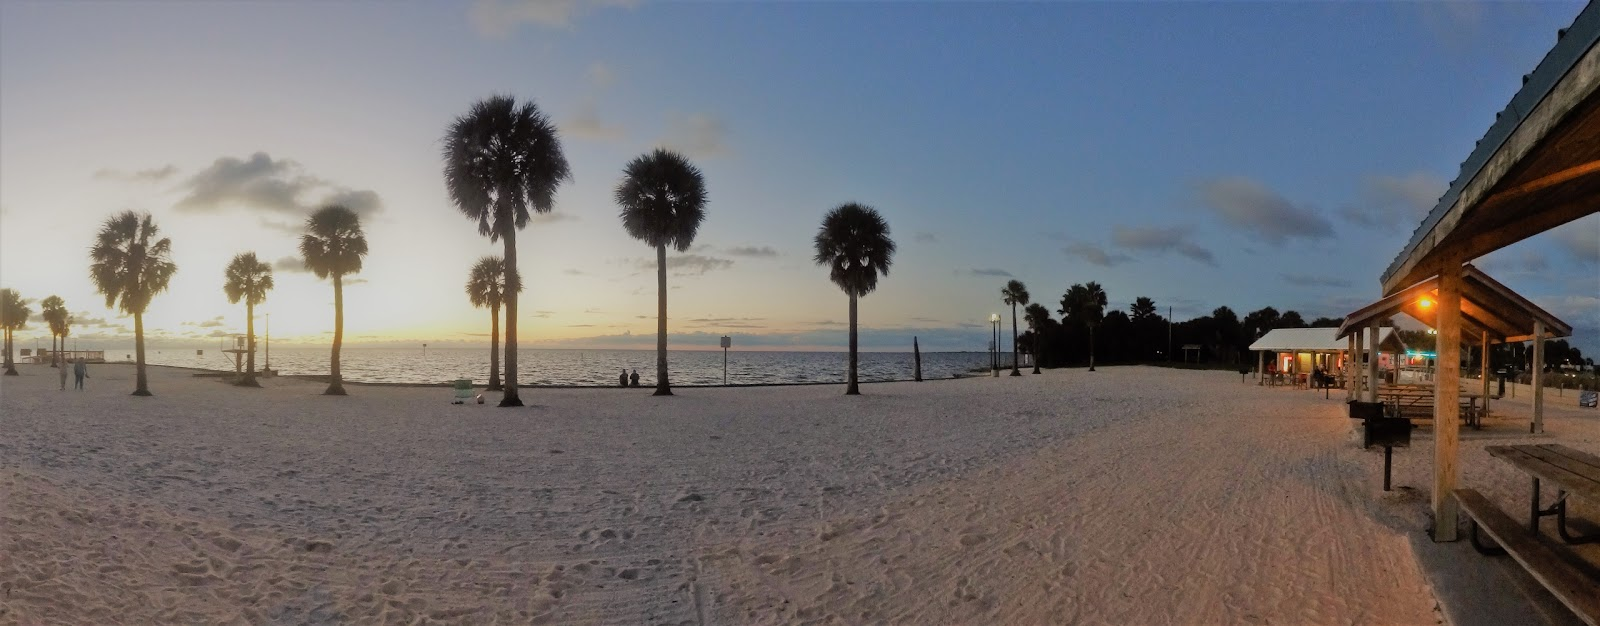 Pine Island Beach Park, Florida USA